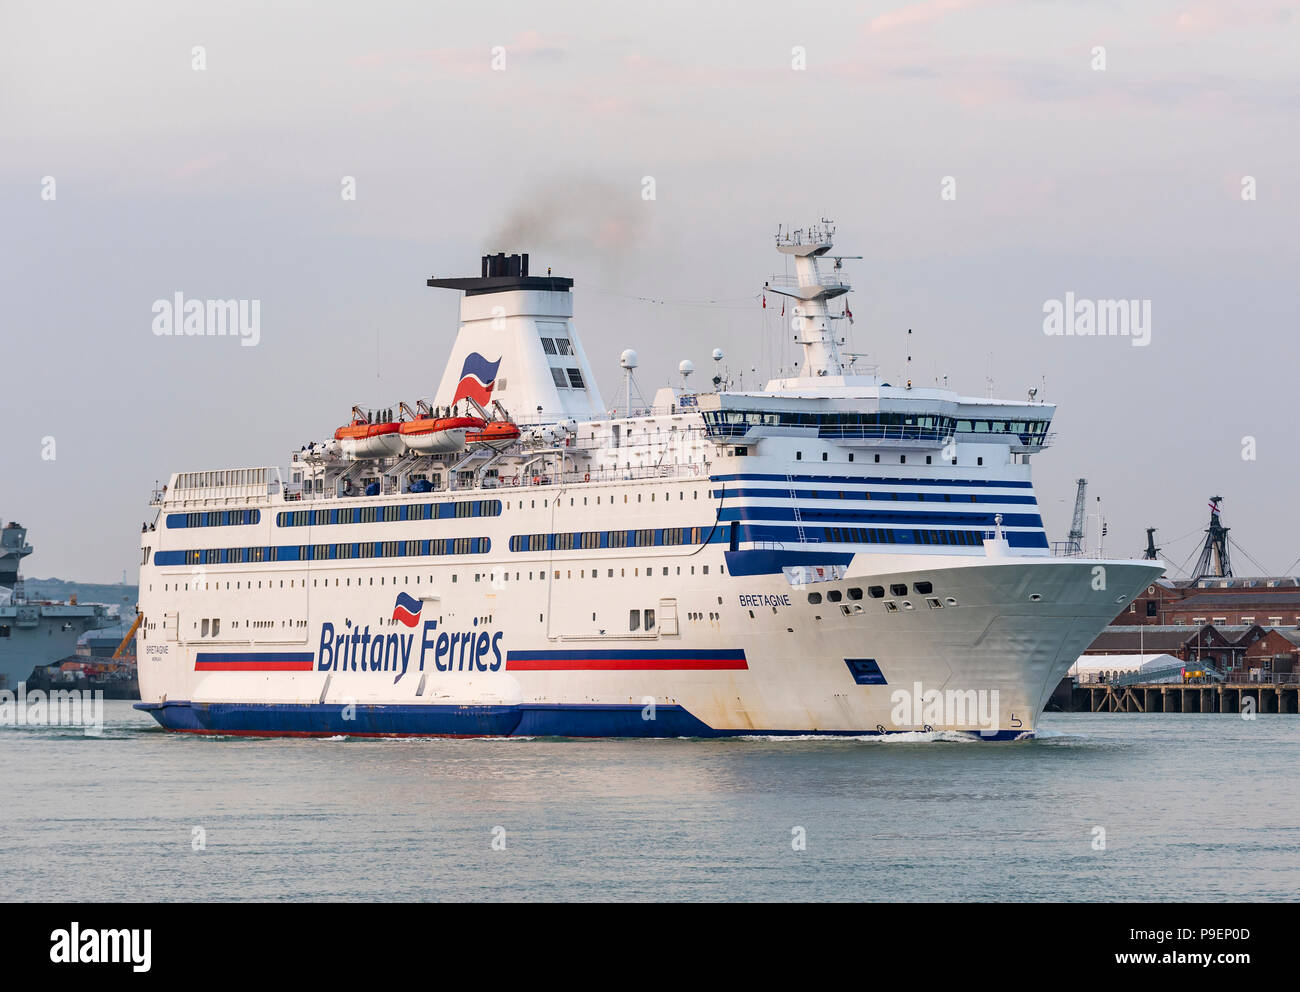 Add new tags   Brittany Ferries ship Bretagne travelling out of Portsmouth Harbour towards the Solent Strait in Portsmouth, Hampshire, England, UK. - Stock Image